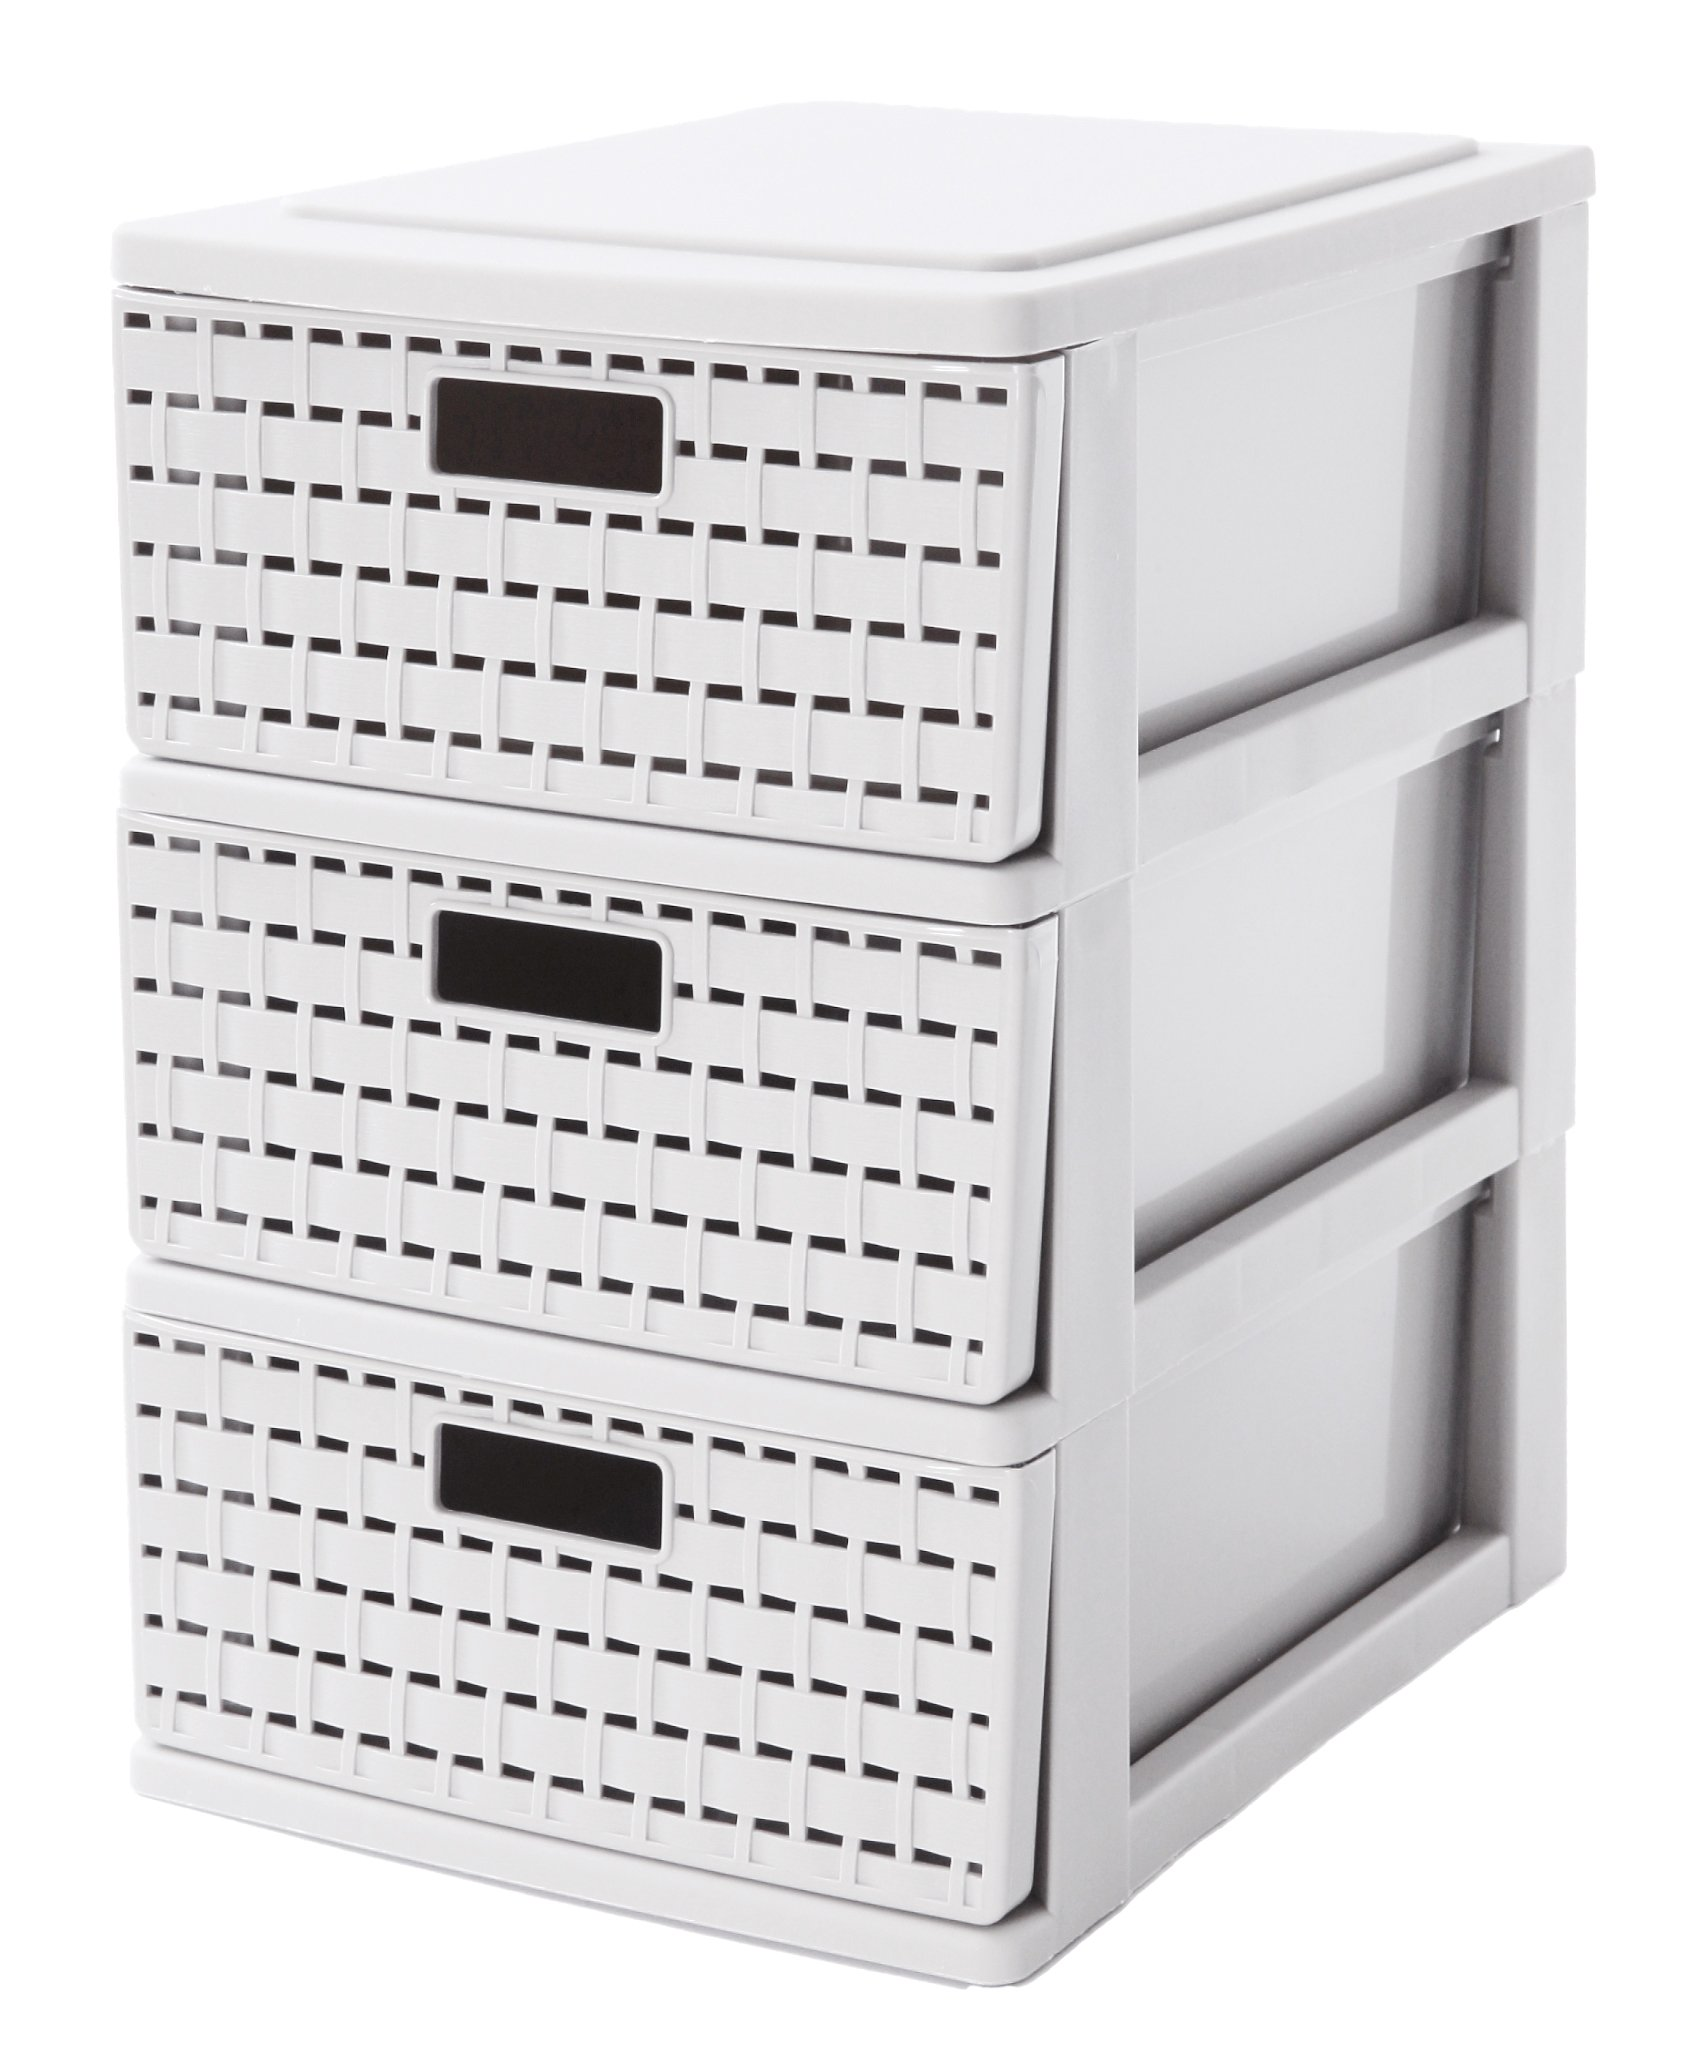 Sundis Country Tower Storage Drawer, White, A5